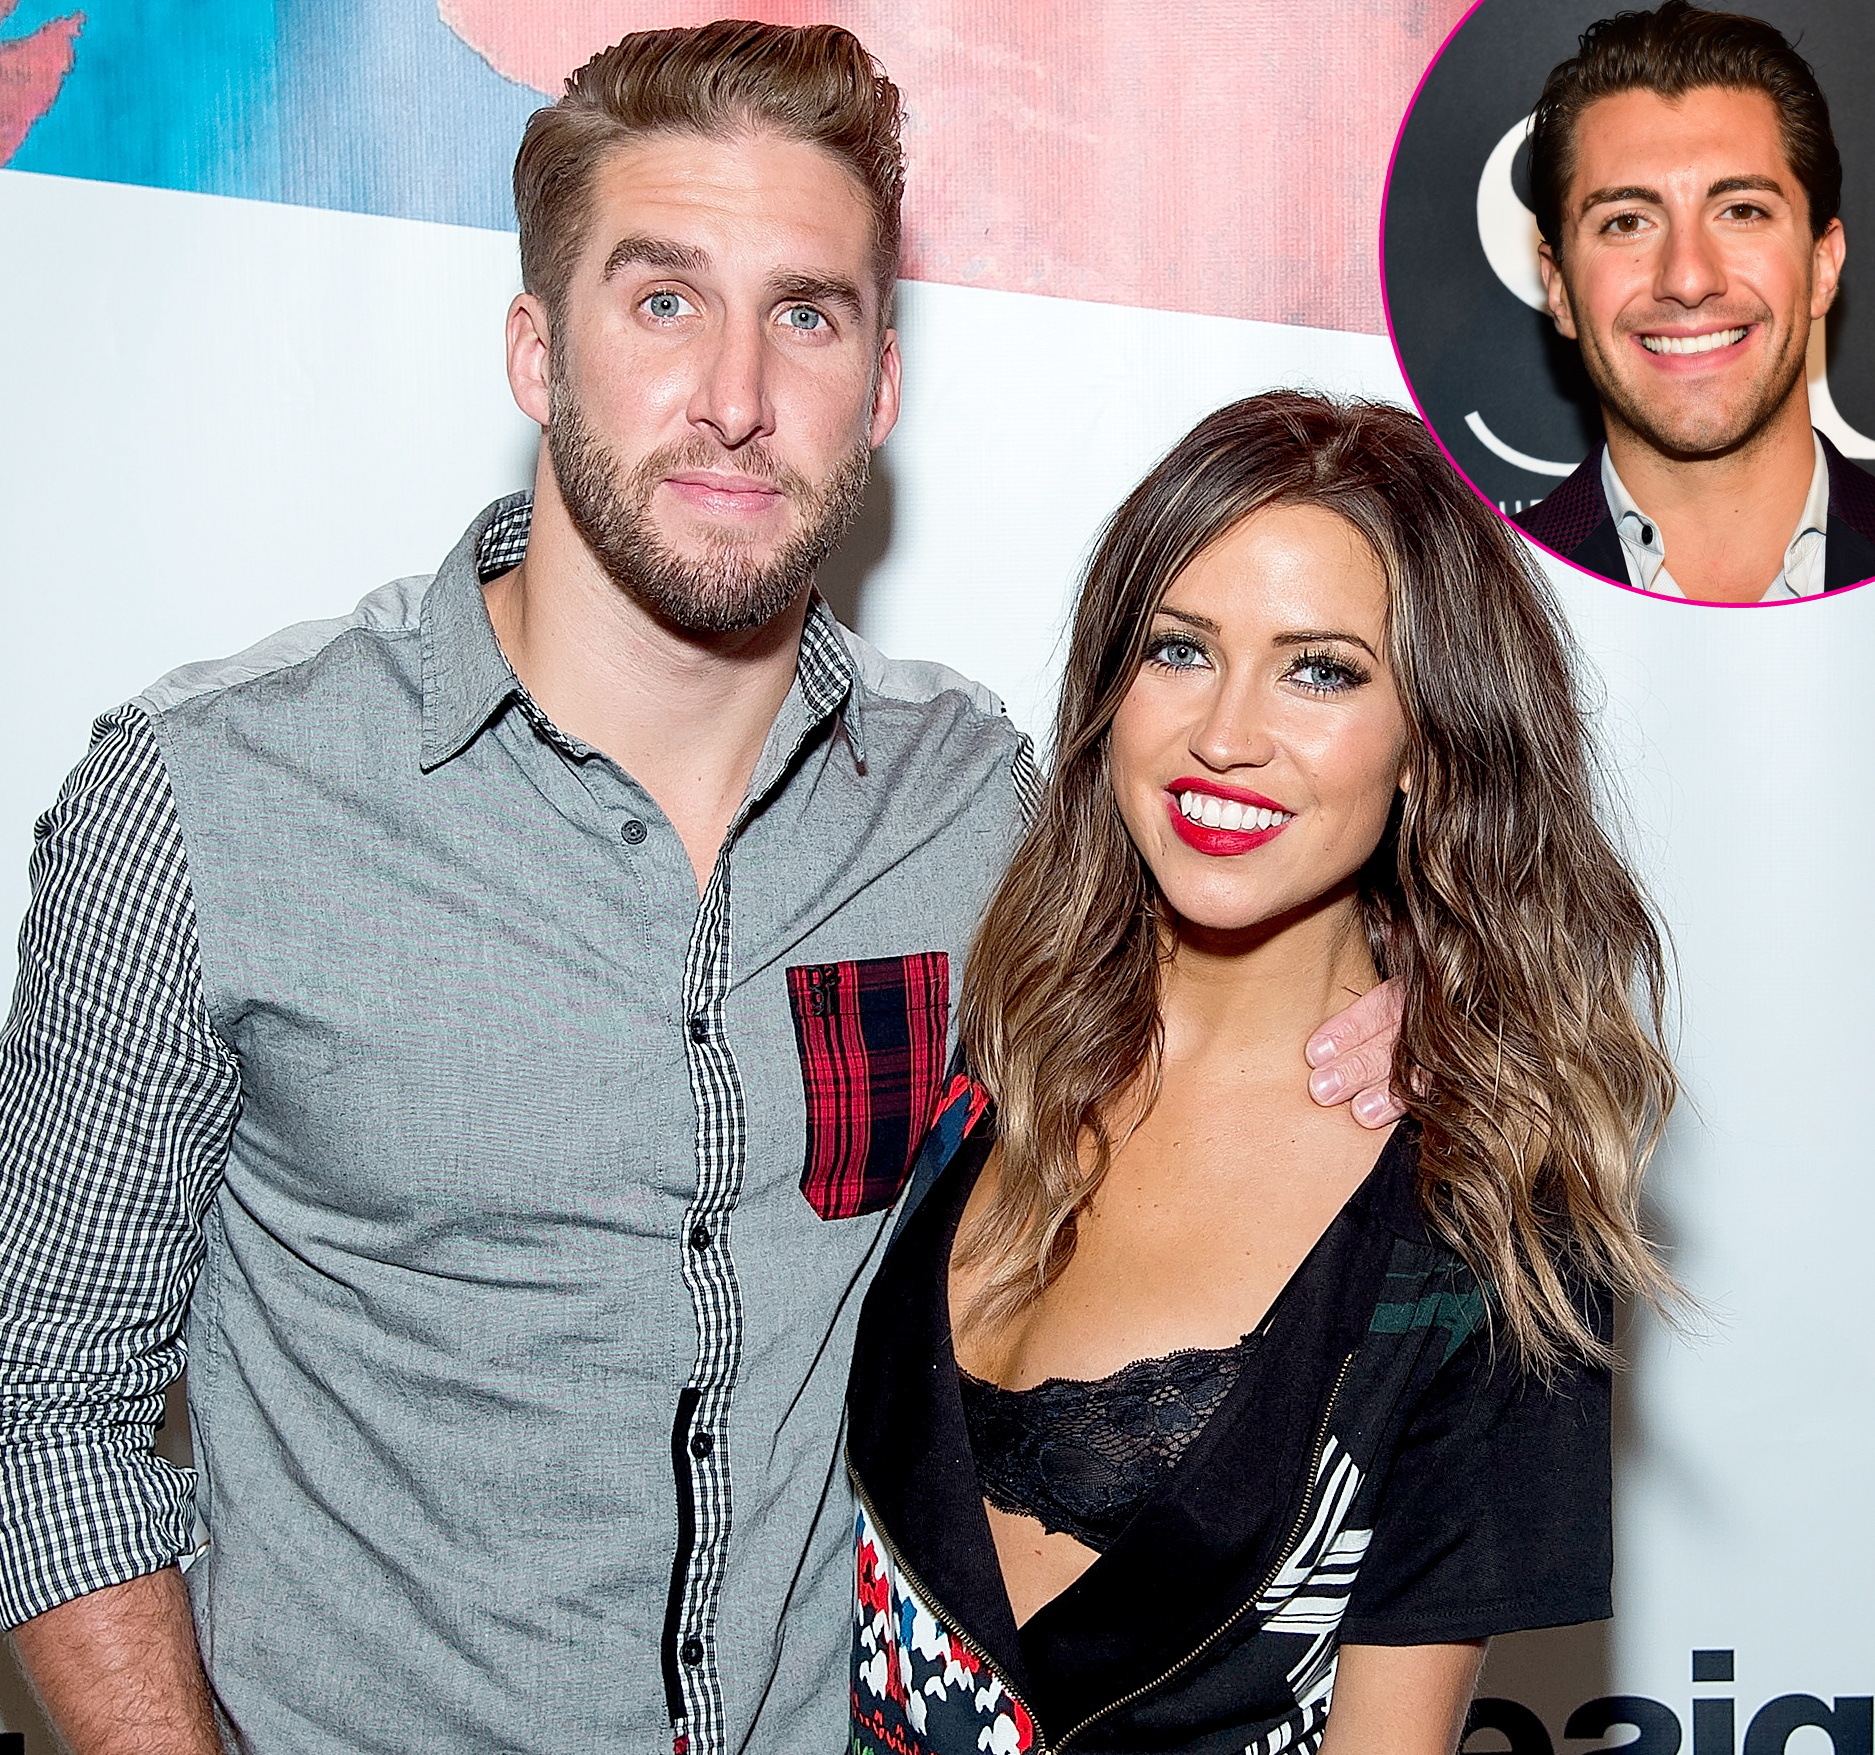 """Kaitlyn-Bristowe-and-Shawn-Booth - Booth said that seeing his ex move on with The Bachelorette alum Jason Tartick , who competed for the affection of Becca Kufrin on season 14 of the show, has helped him to do the same. """"[I'm] trying to understand things right now. I guess this goes with her new relationship too. It just kind of makes me question everything that we've had,"""" he told Ben Higgins and Ashley Iacontti on their podcast """"Almost Famous: In Depth"""" in January 2019."""